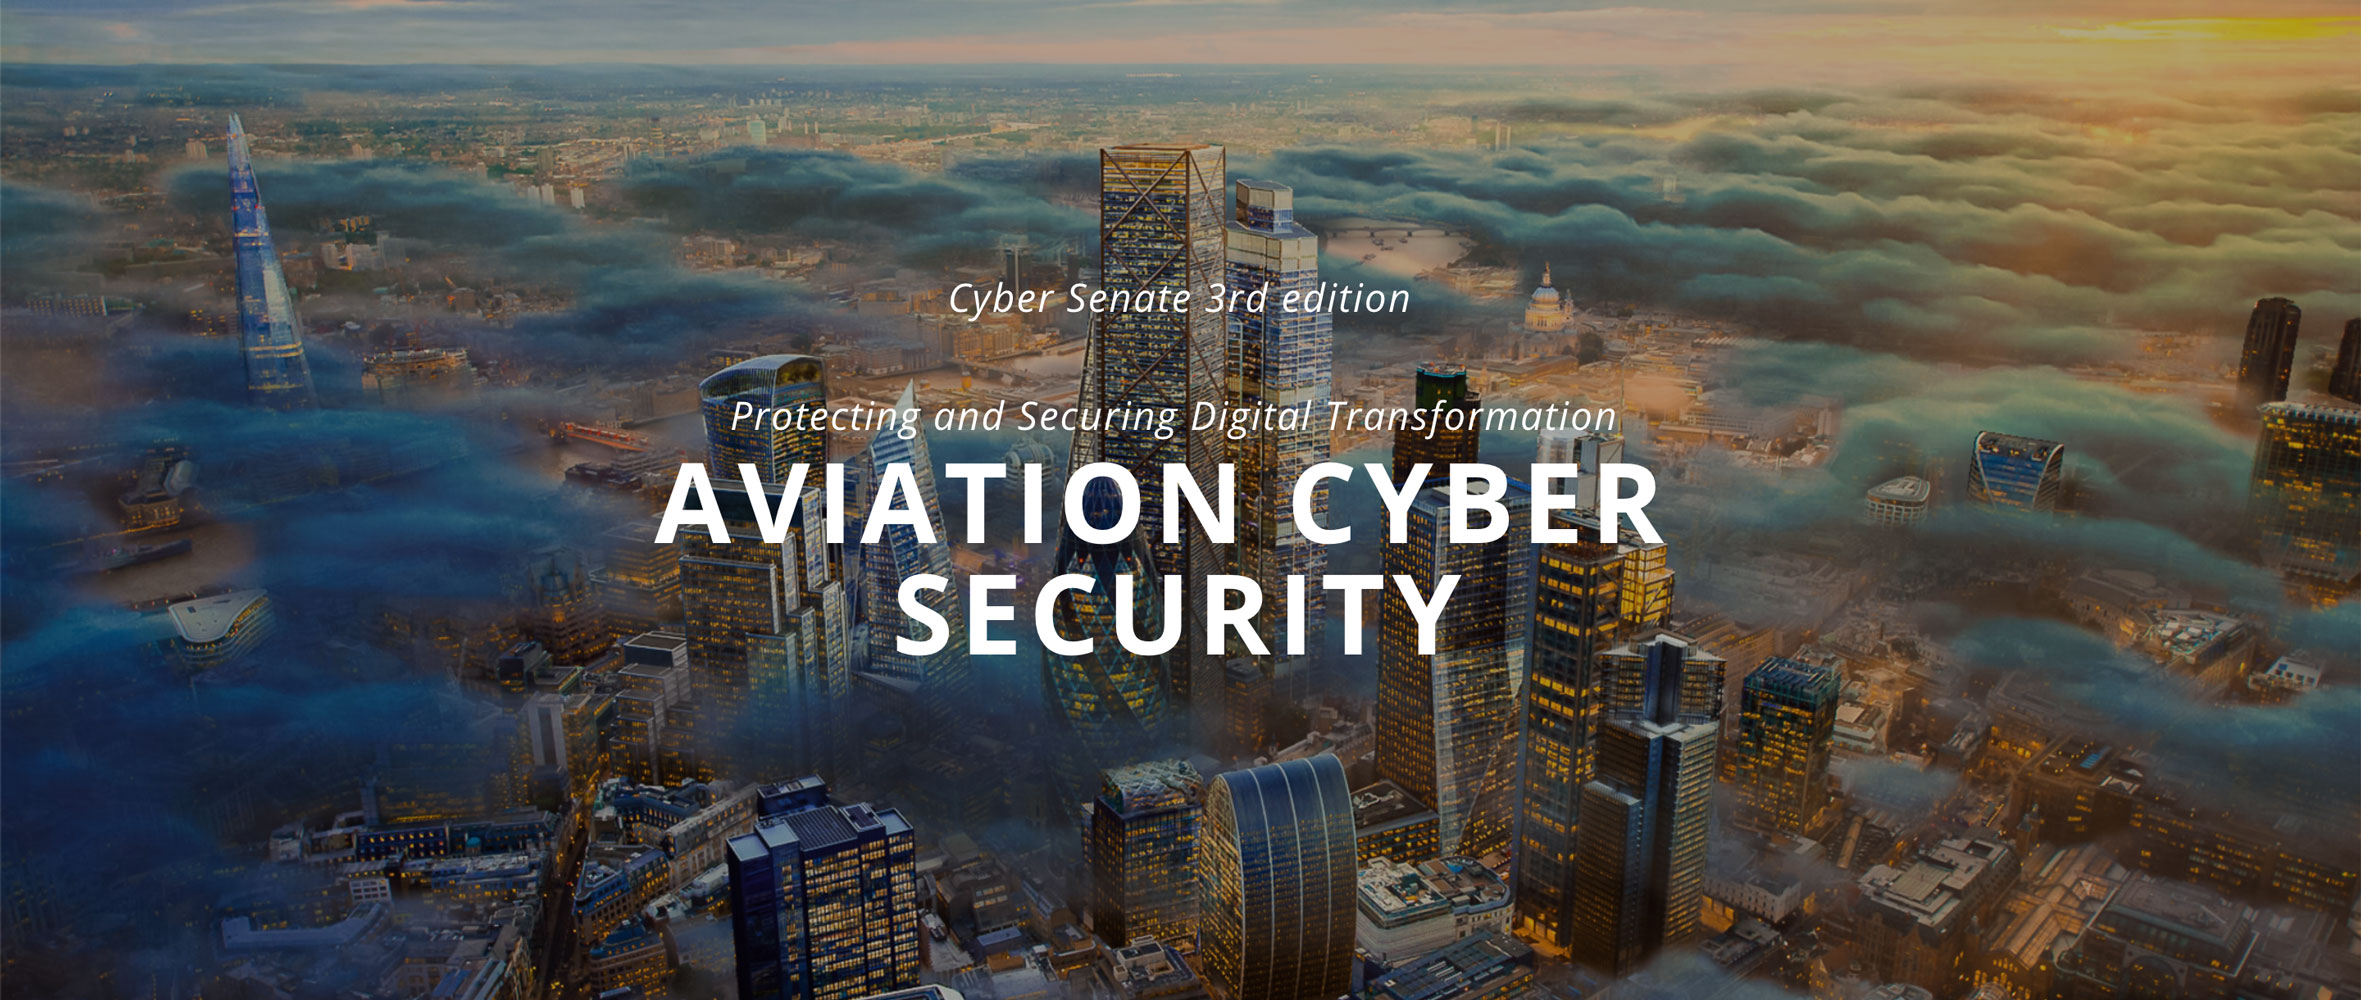 Aviation Cybersecurity 2019